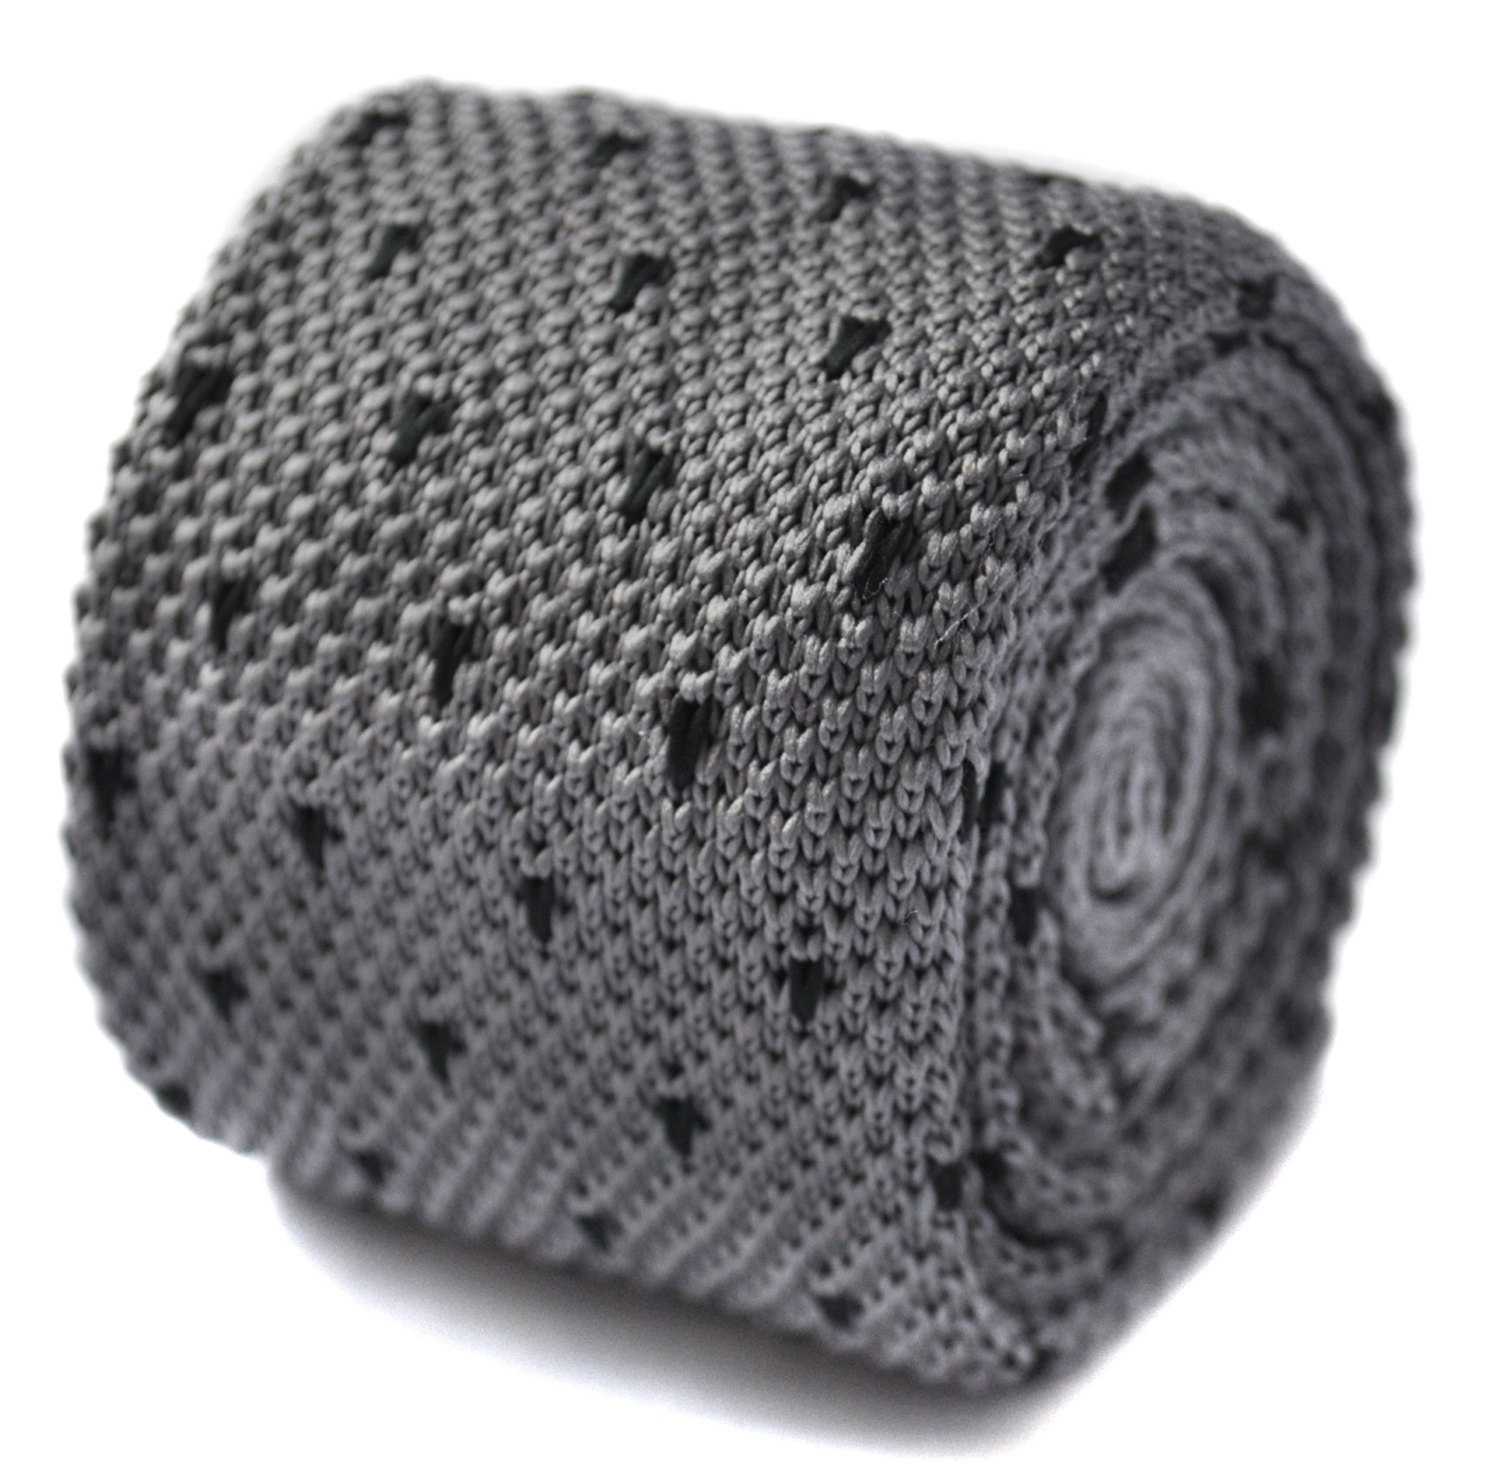 knitted grey tie with black spotted skinny tie by Frederick Thomas FT1583